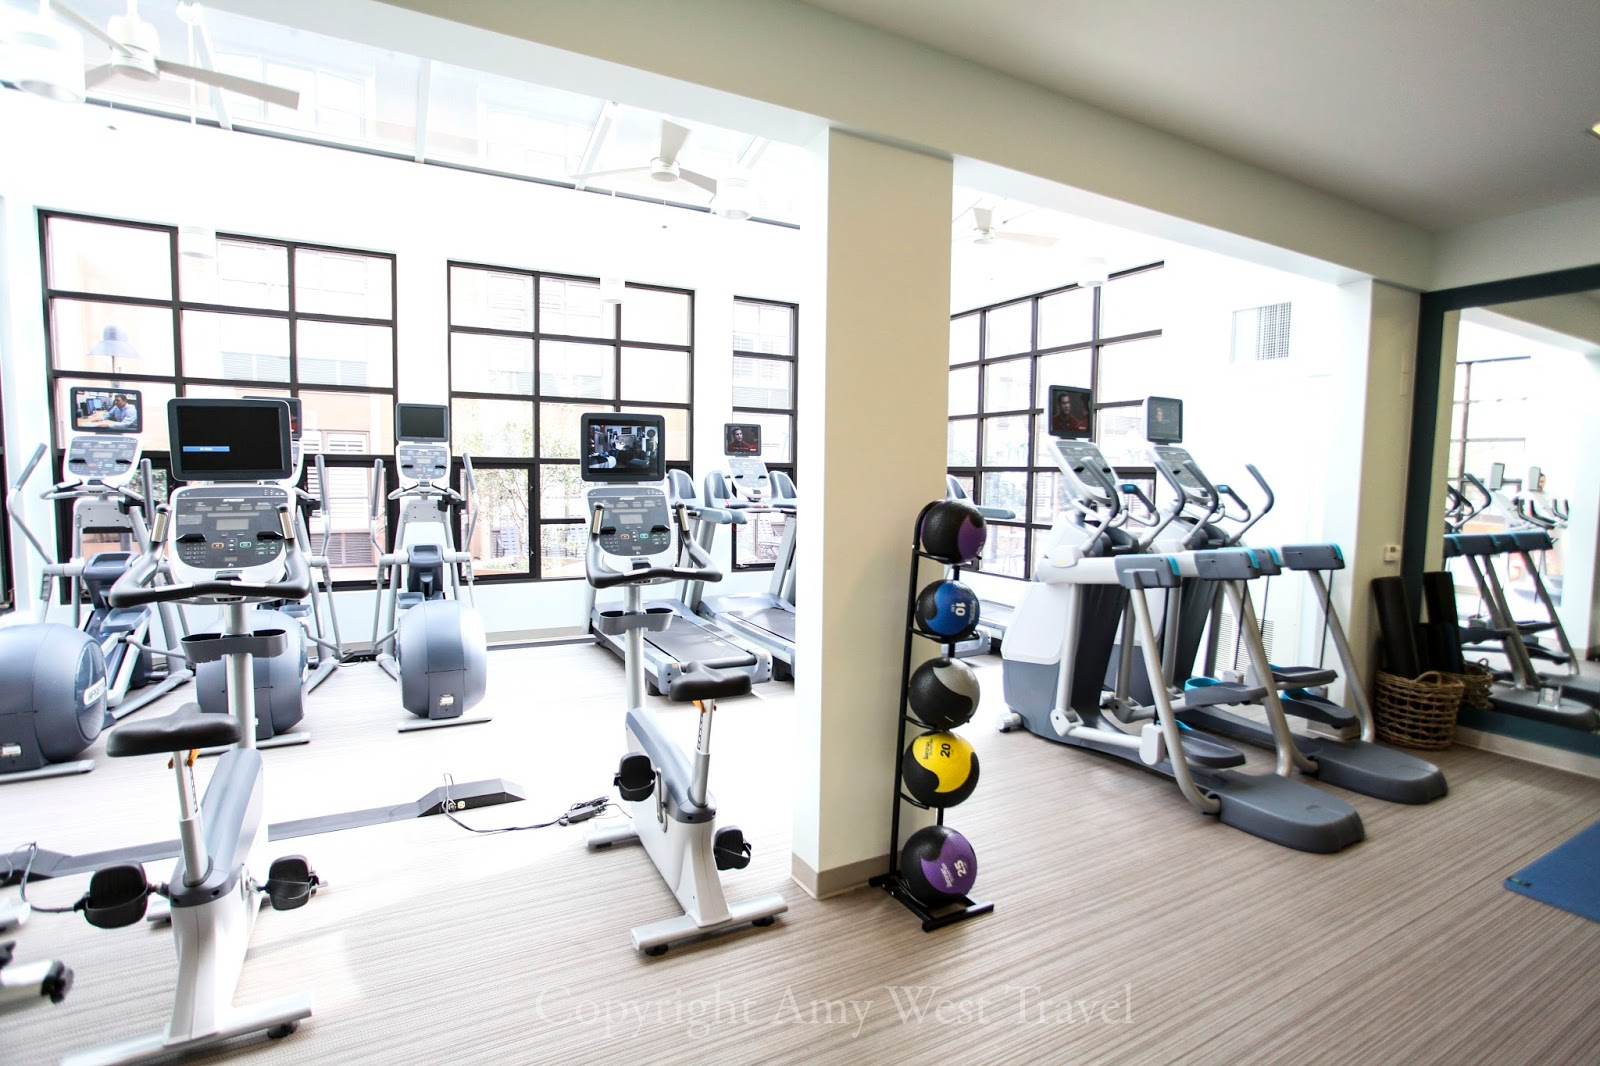 Fitness Center at Pier 2620 Hotel